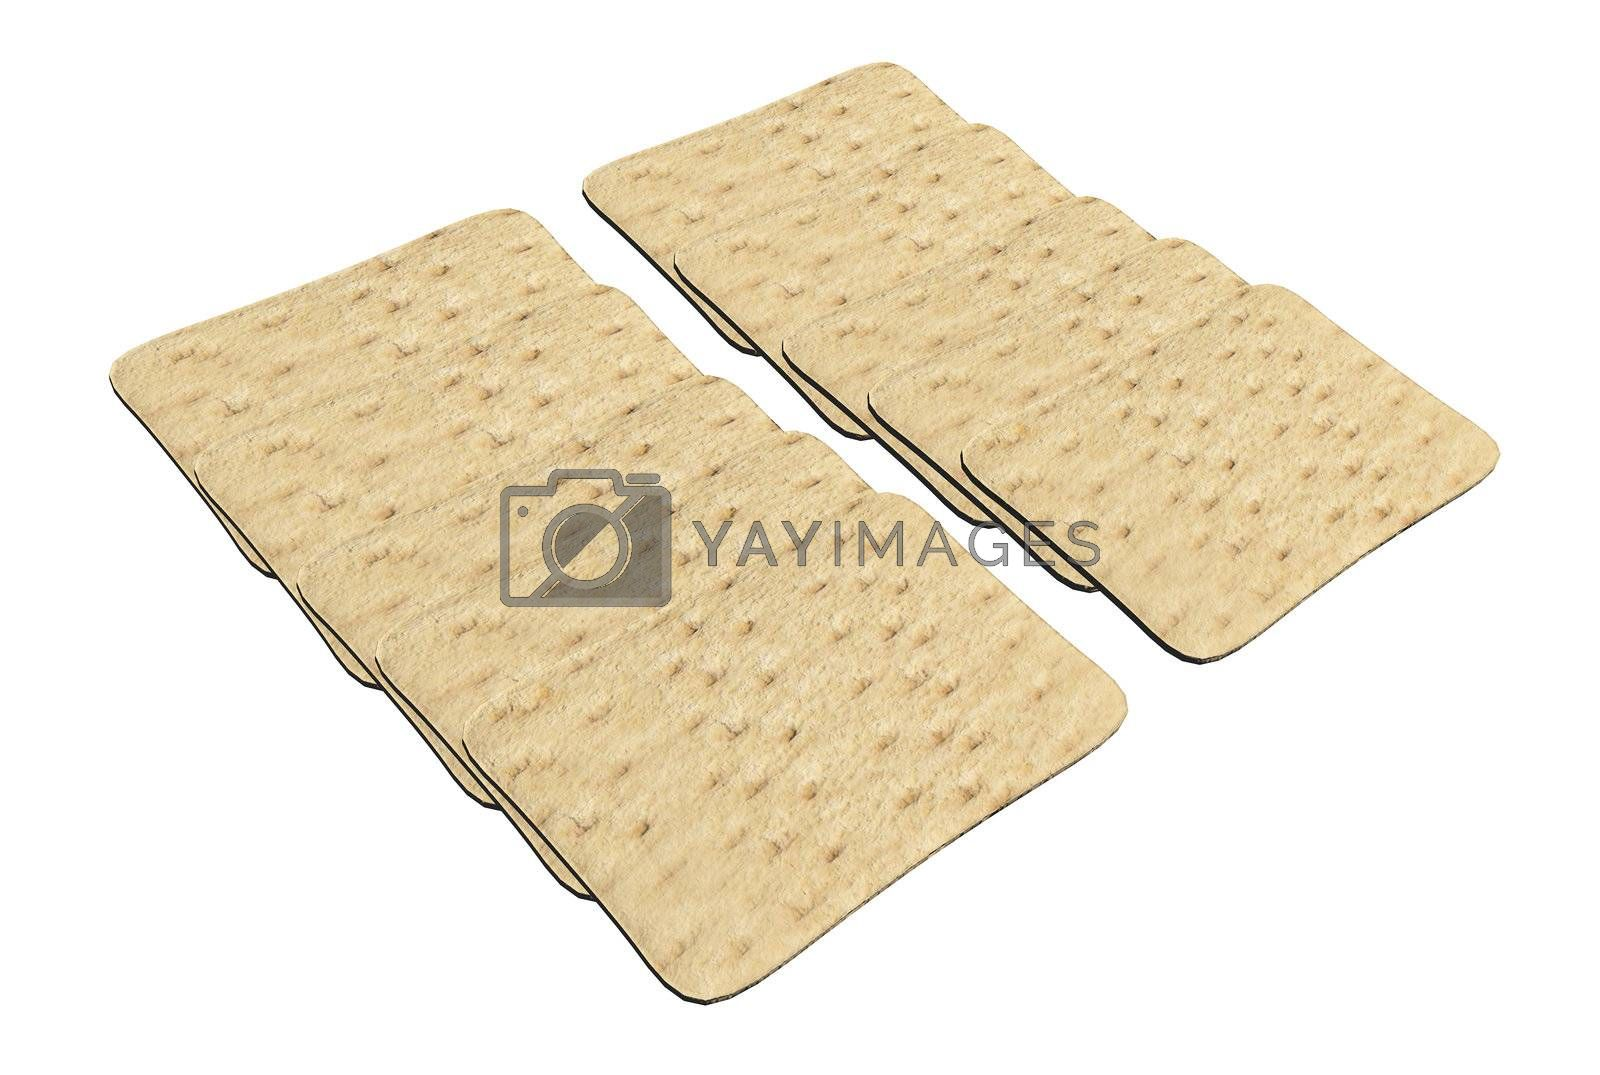 Set of rectangular wheat crackers, 3d illustration, isolated against a white background